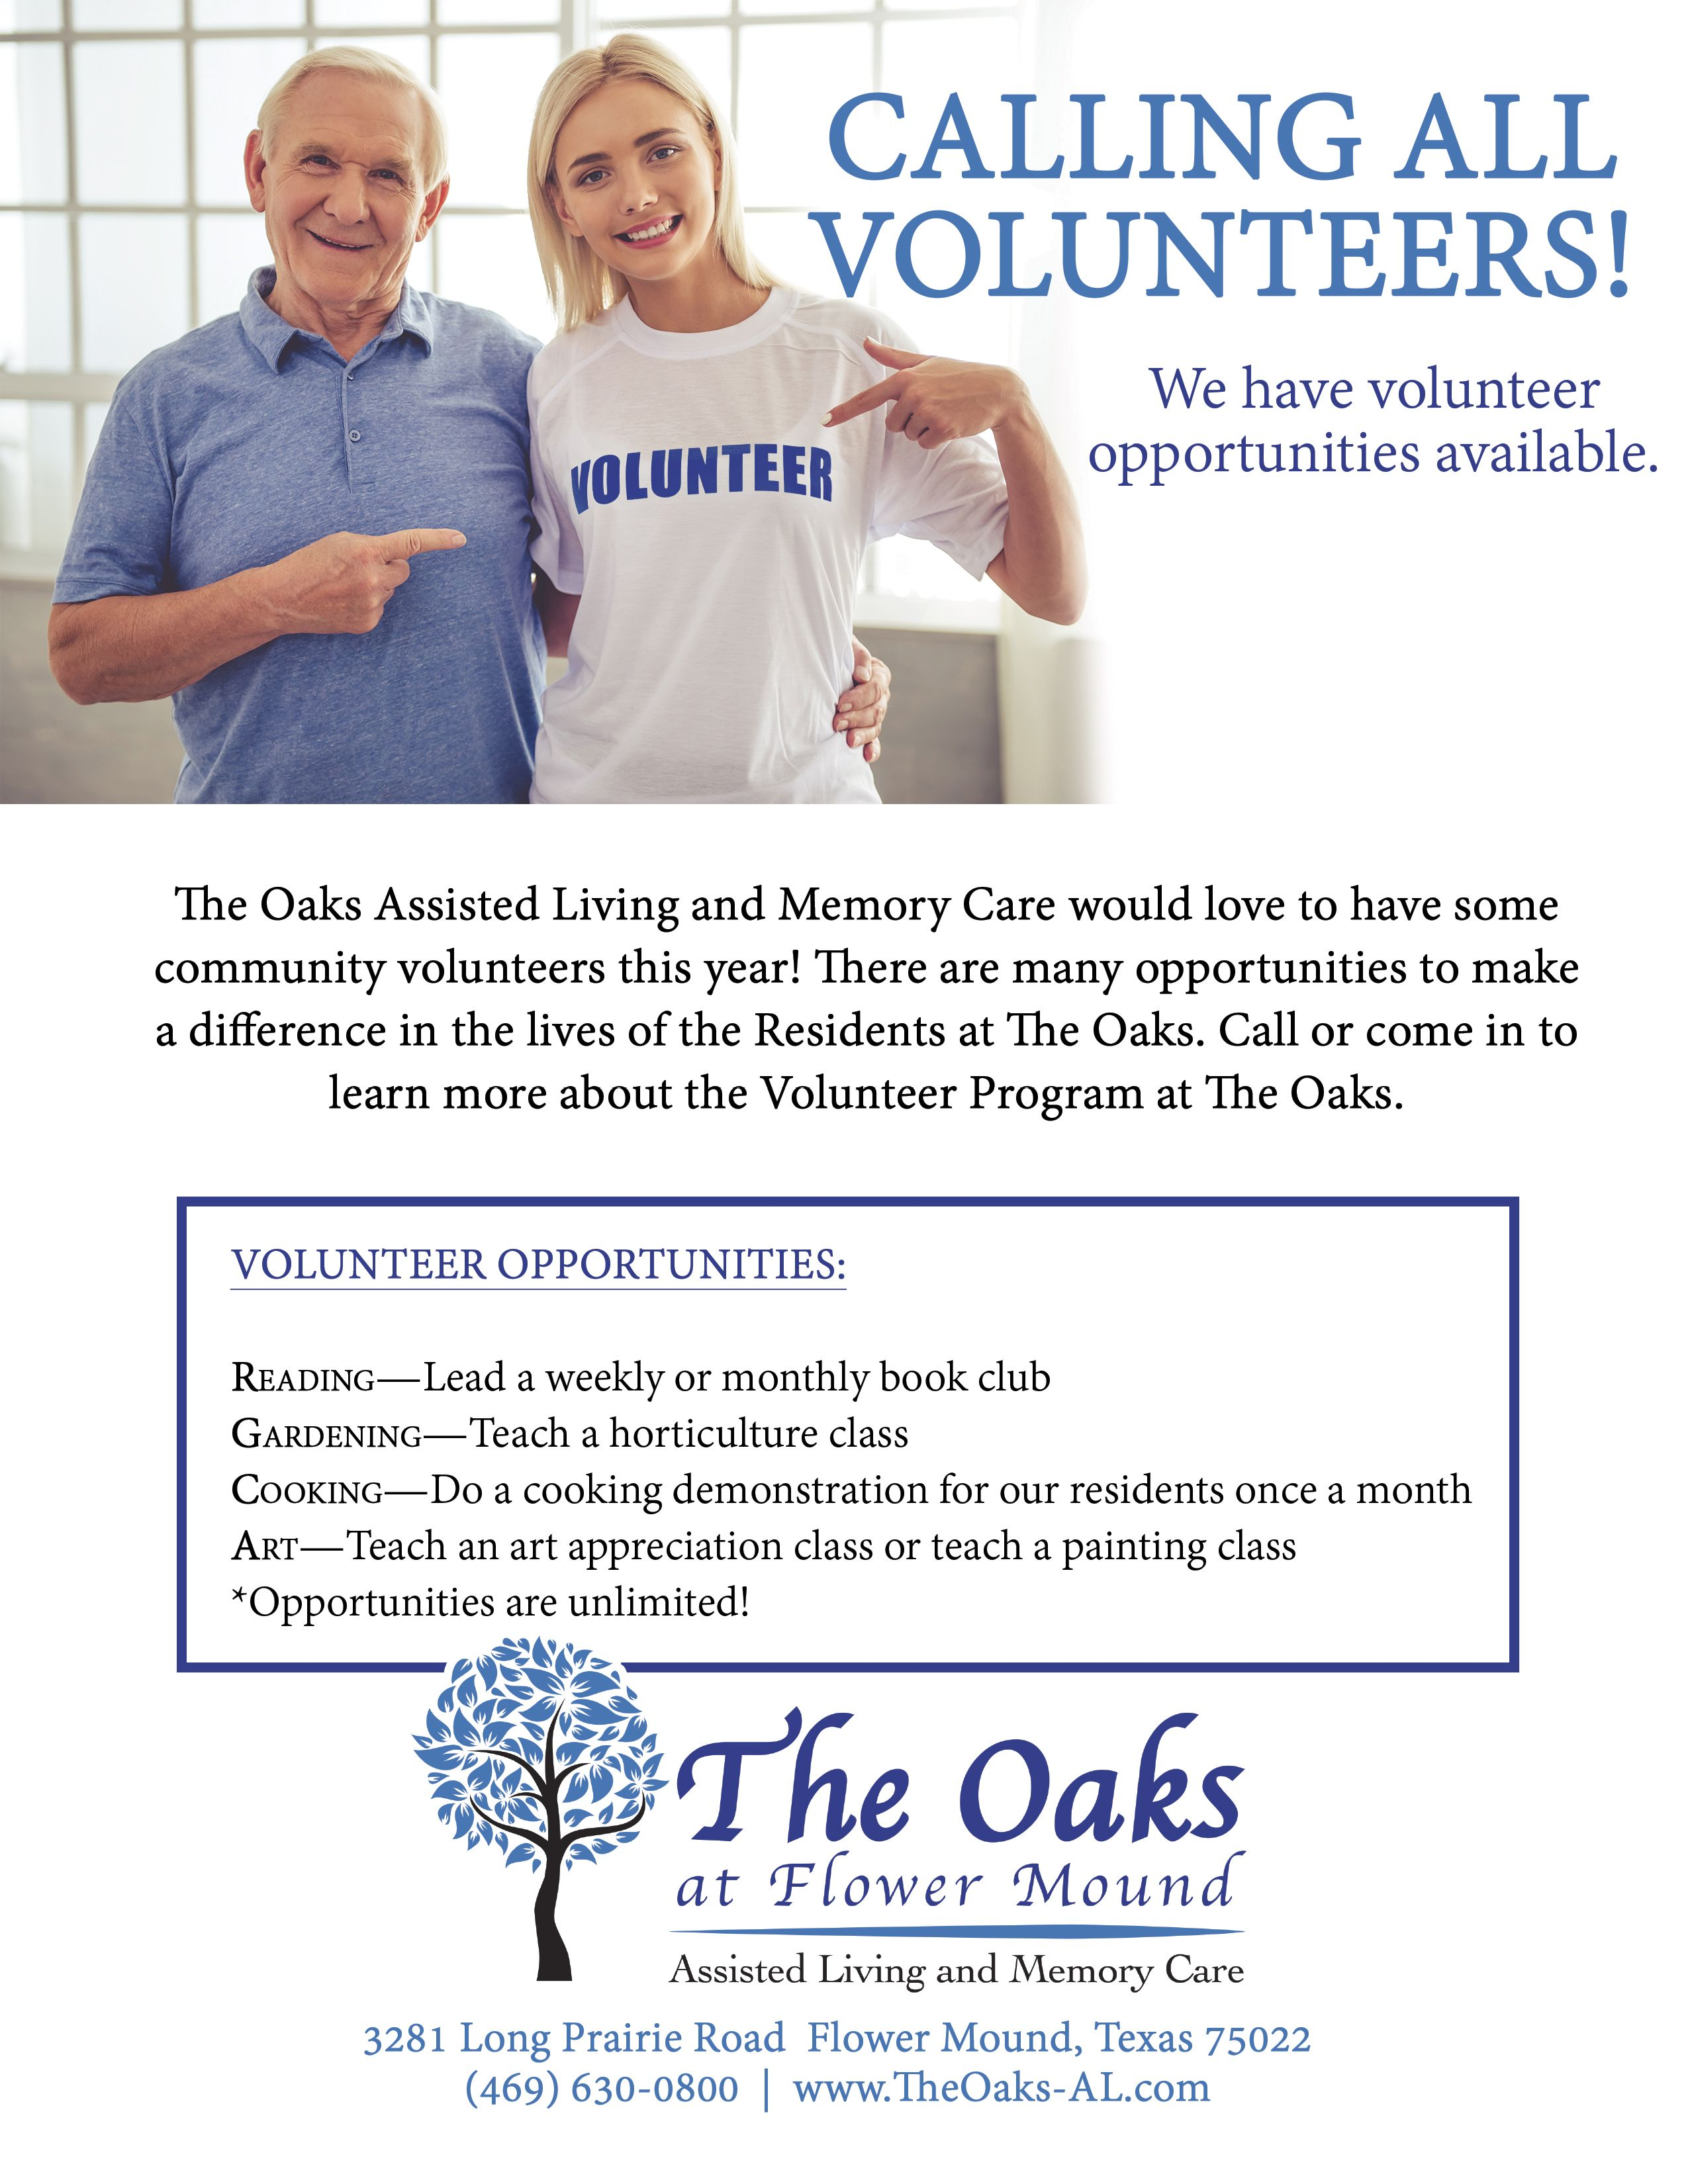 Calling all Volunteers in #FlowerMound! We love to get the